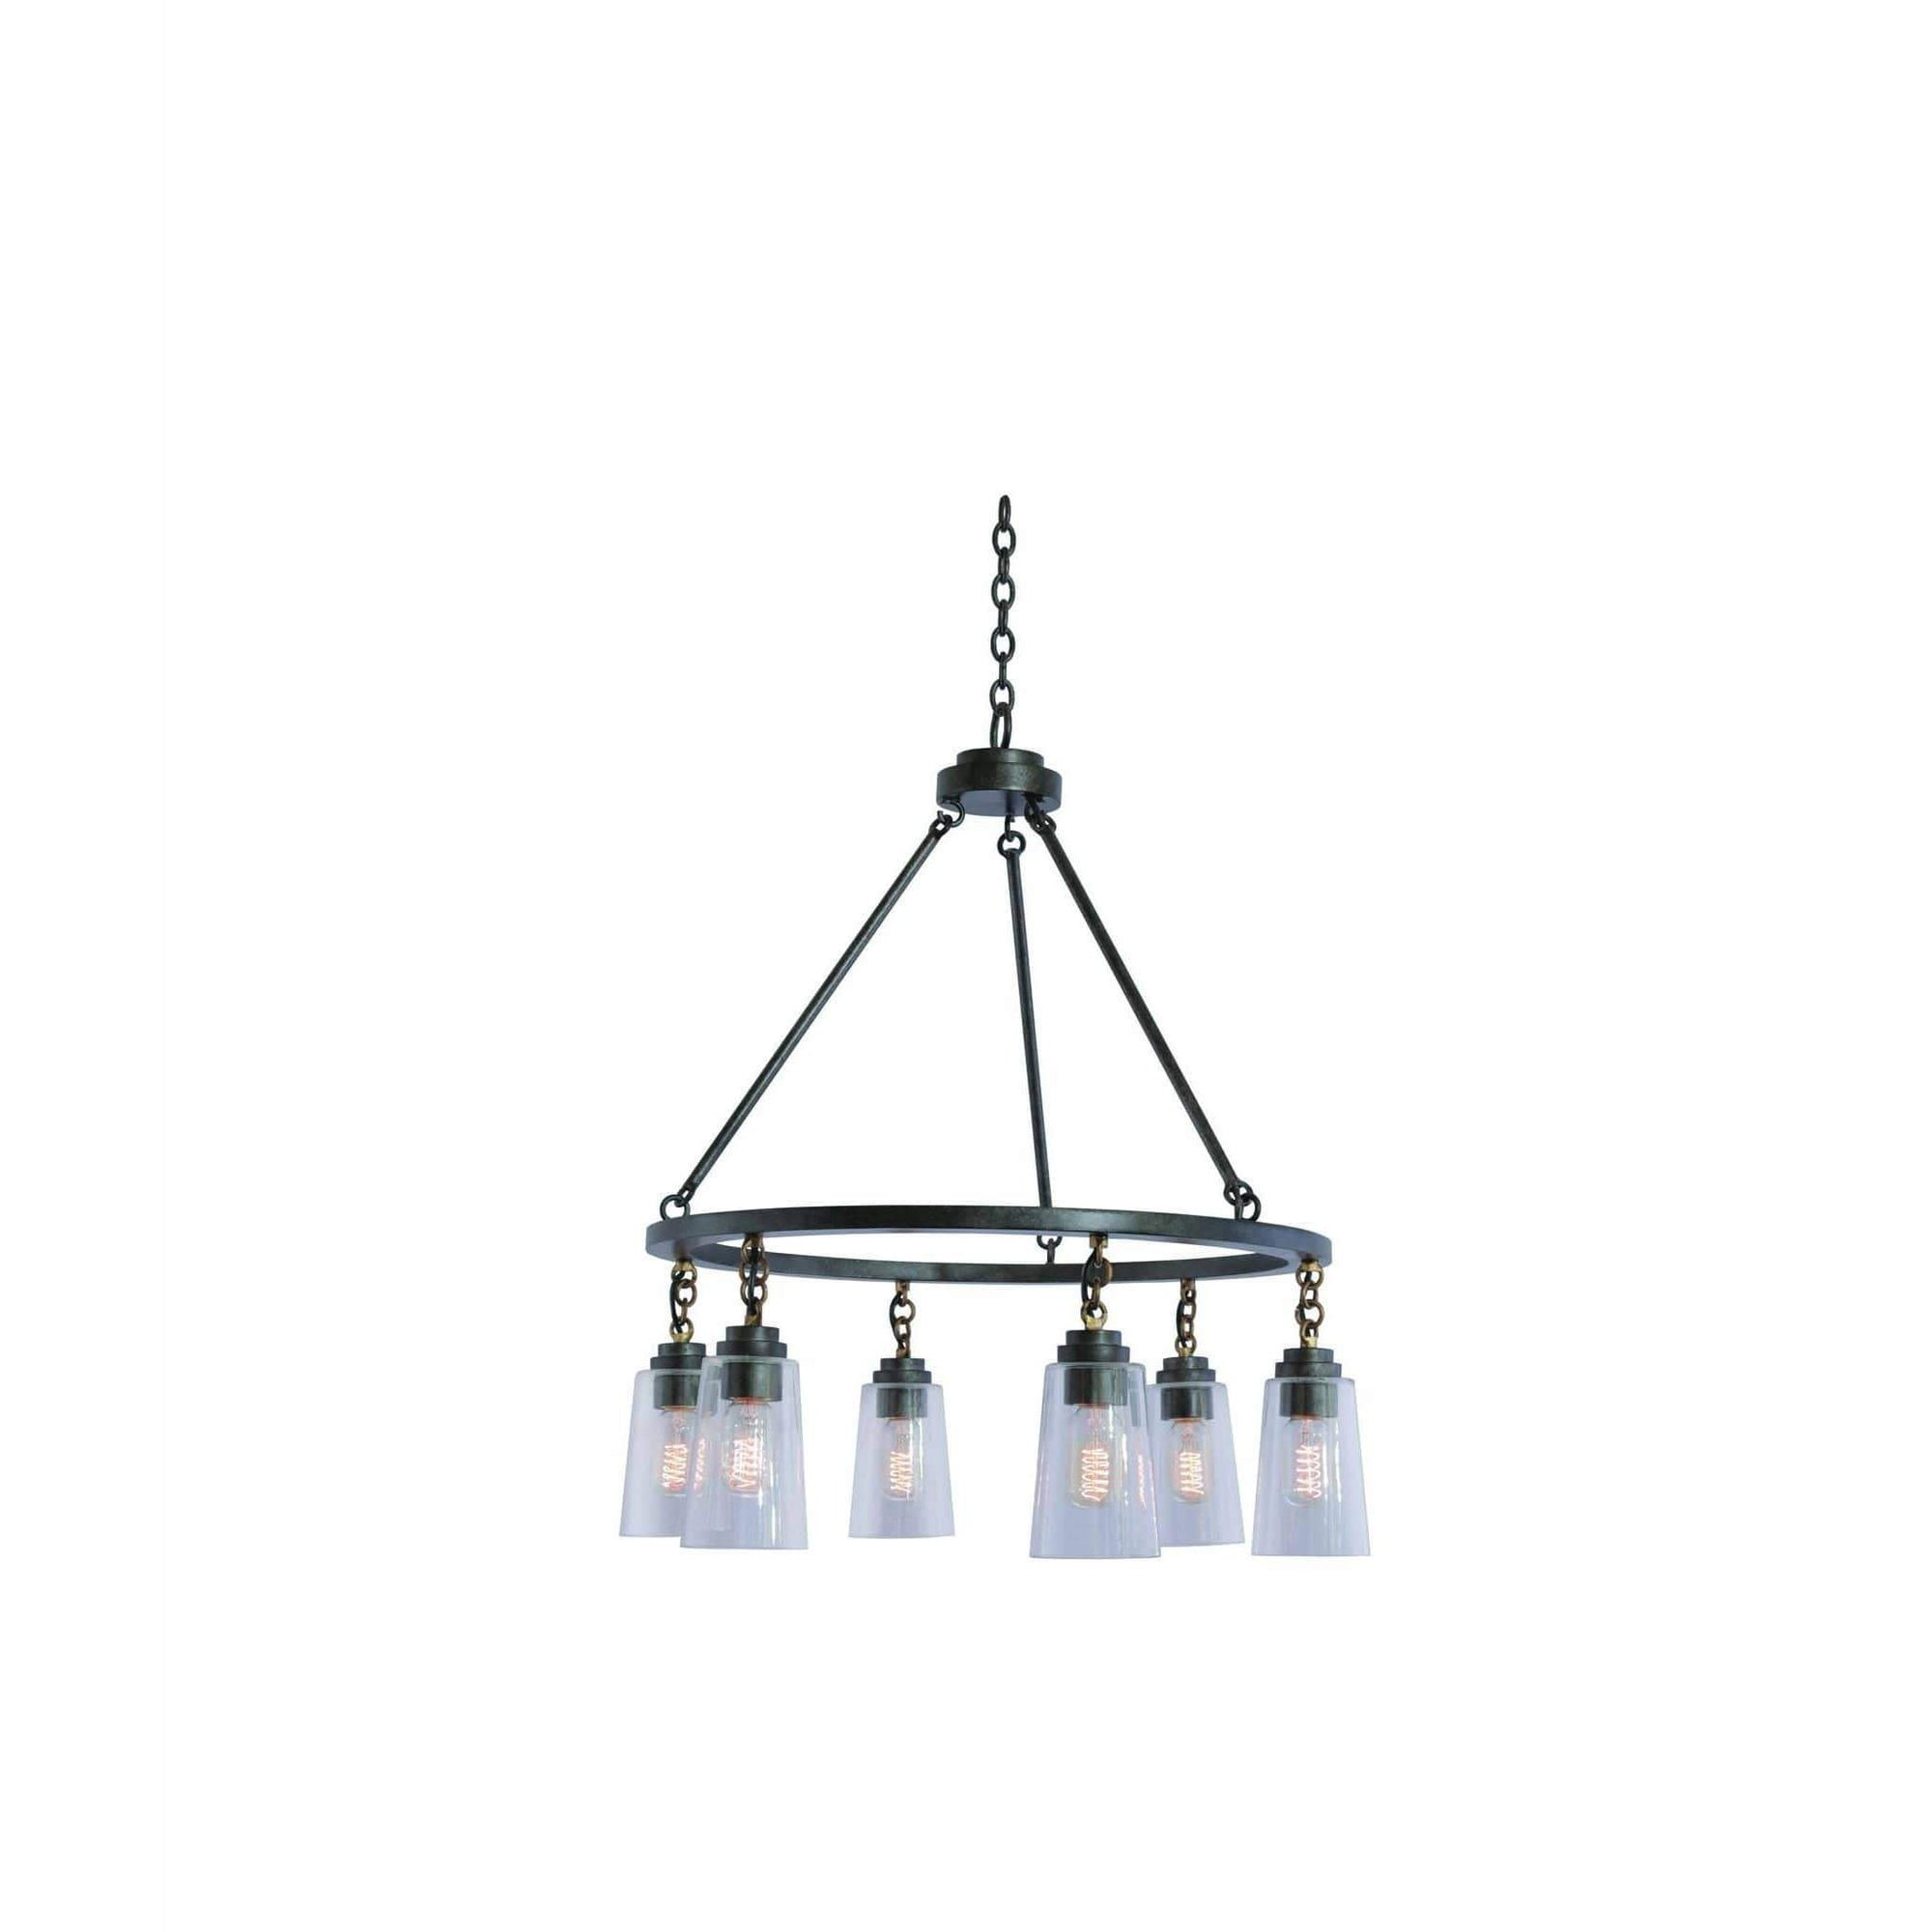 Kalco Lighting Pendants Milled Iron Dillon 6 Light Pendant By Kalco Lighting 504952